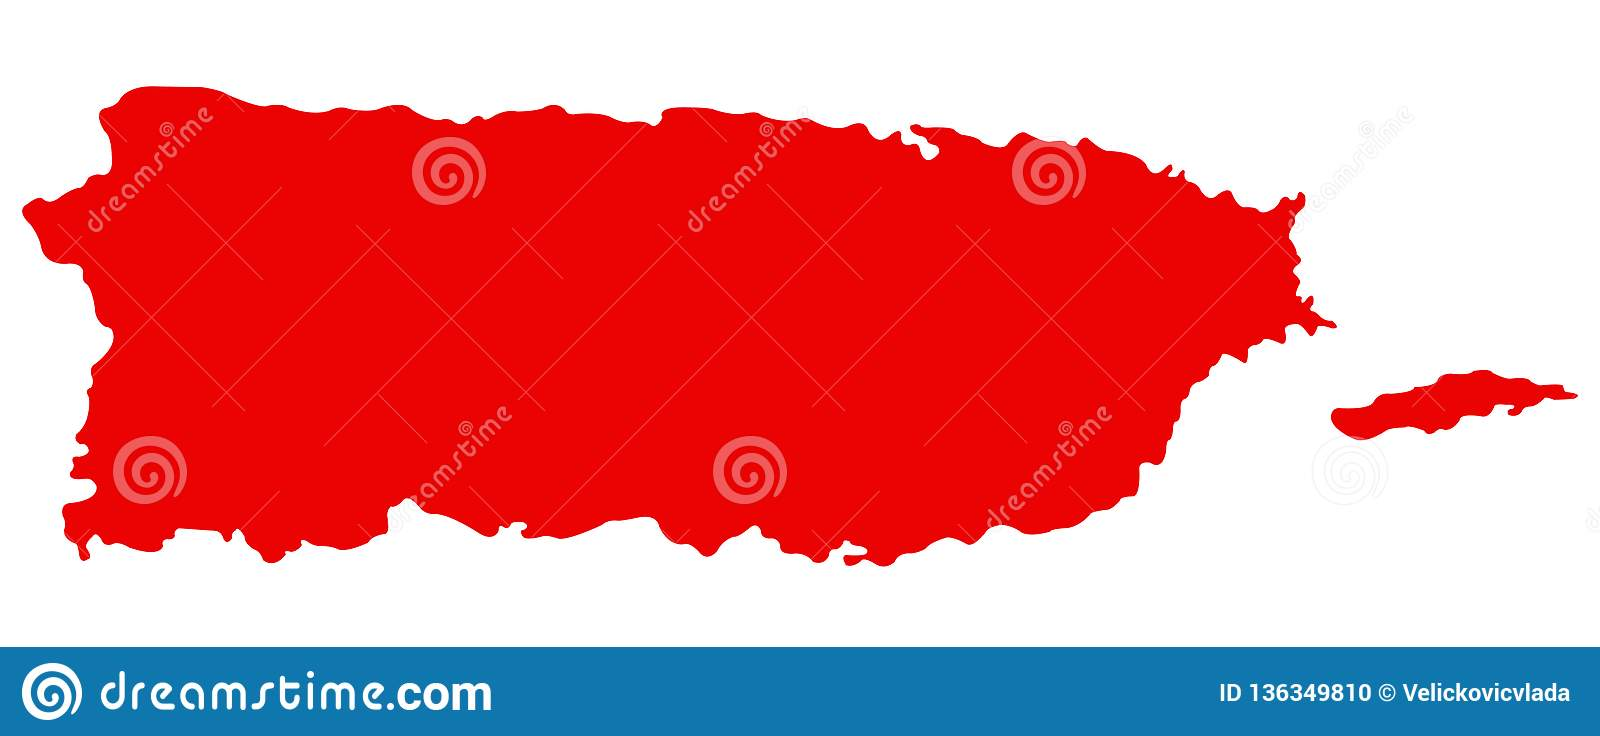 Puerto Rico Map - Commonwealth Of Puerto Rico Stock Vector ...